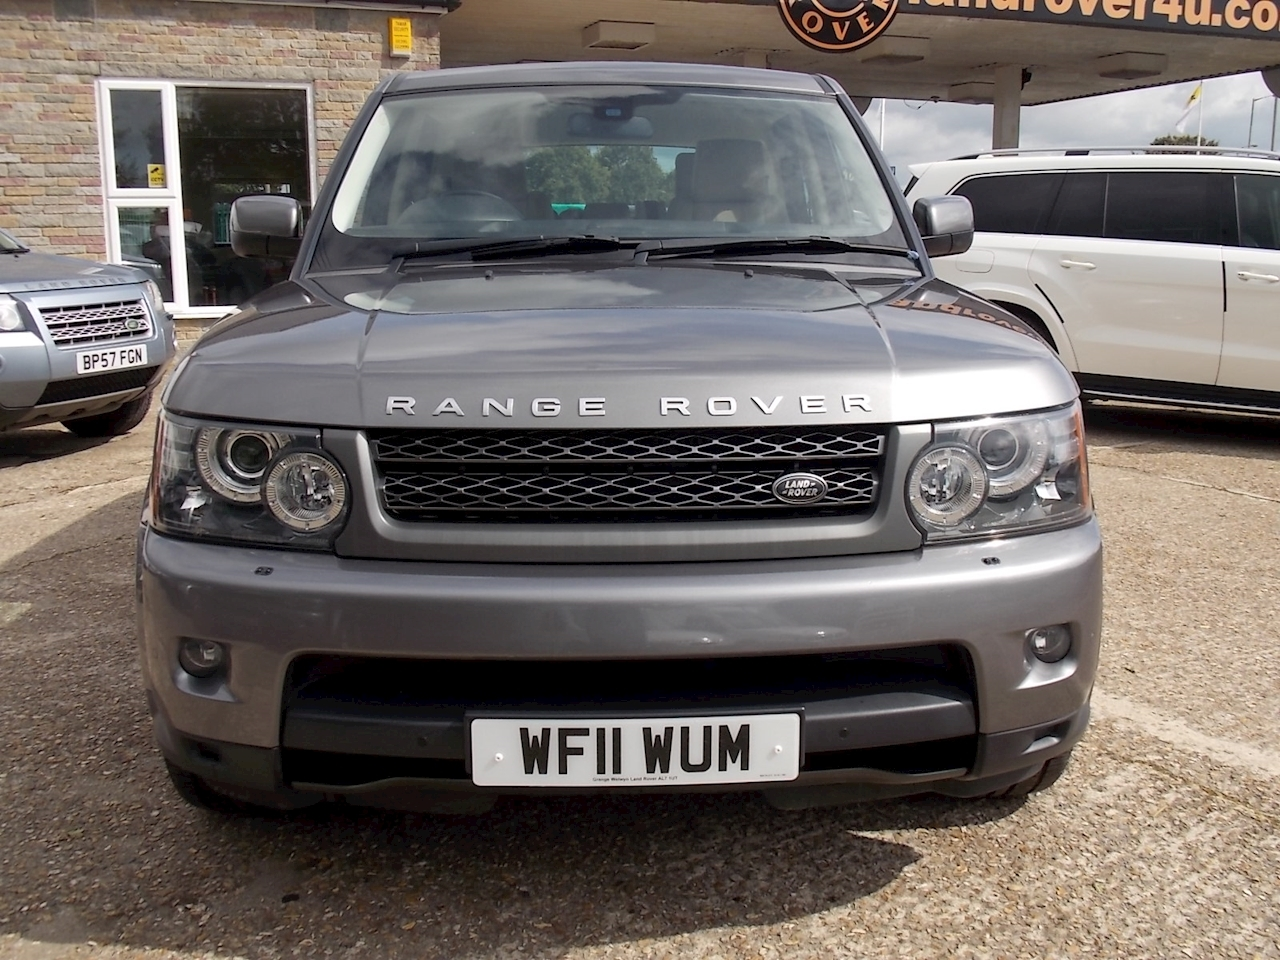 Land Rover Range Rover Sport Tdv6 Hse Estate 3.0 Automatic Diesel